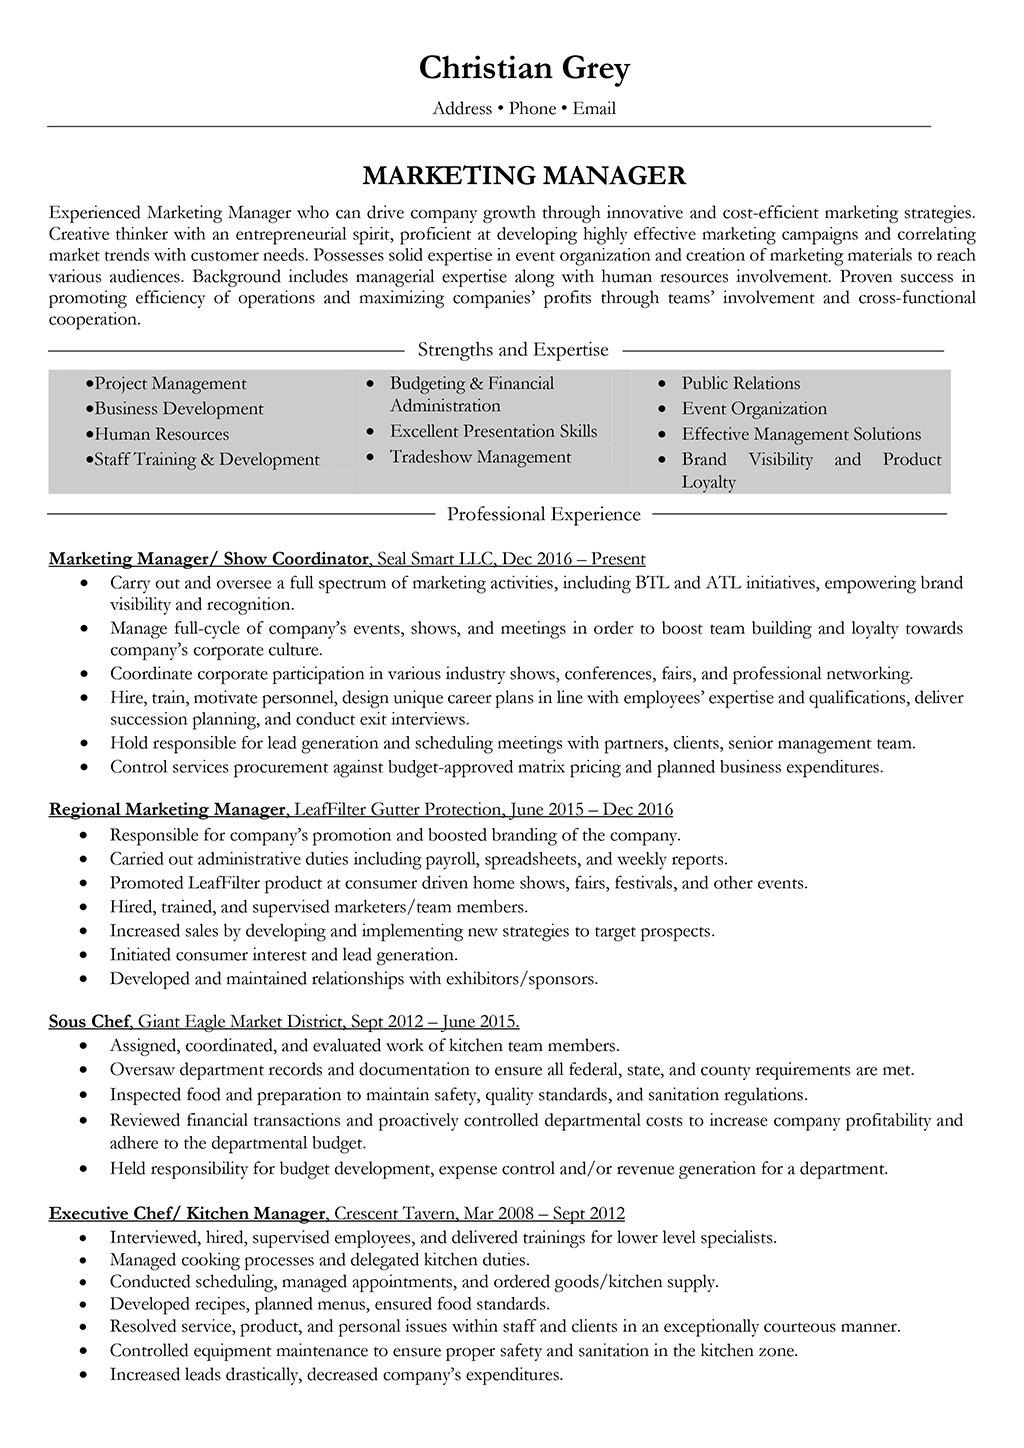 Marketing Resume Examples  Marketing Manager Resume Samples And Writing Guide 10 Examples